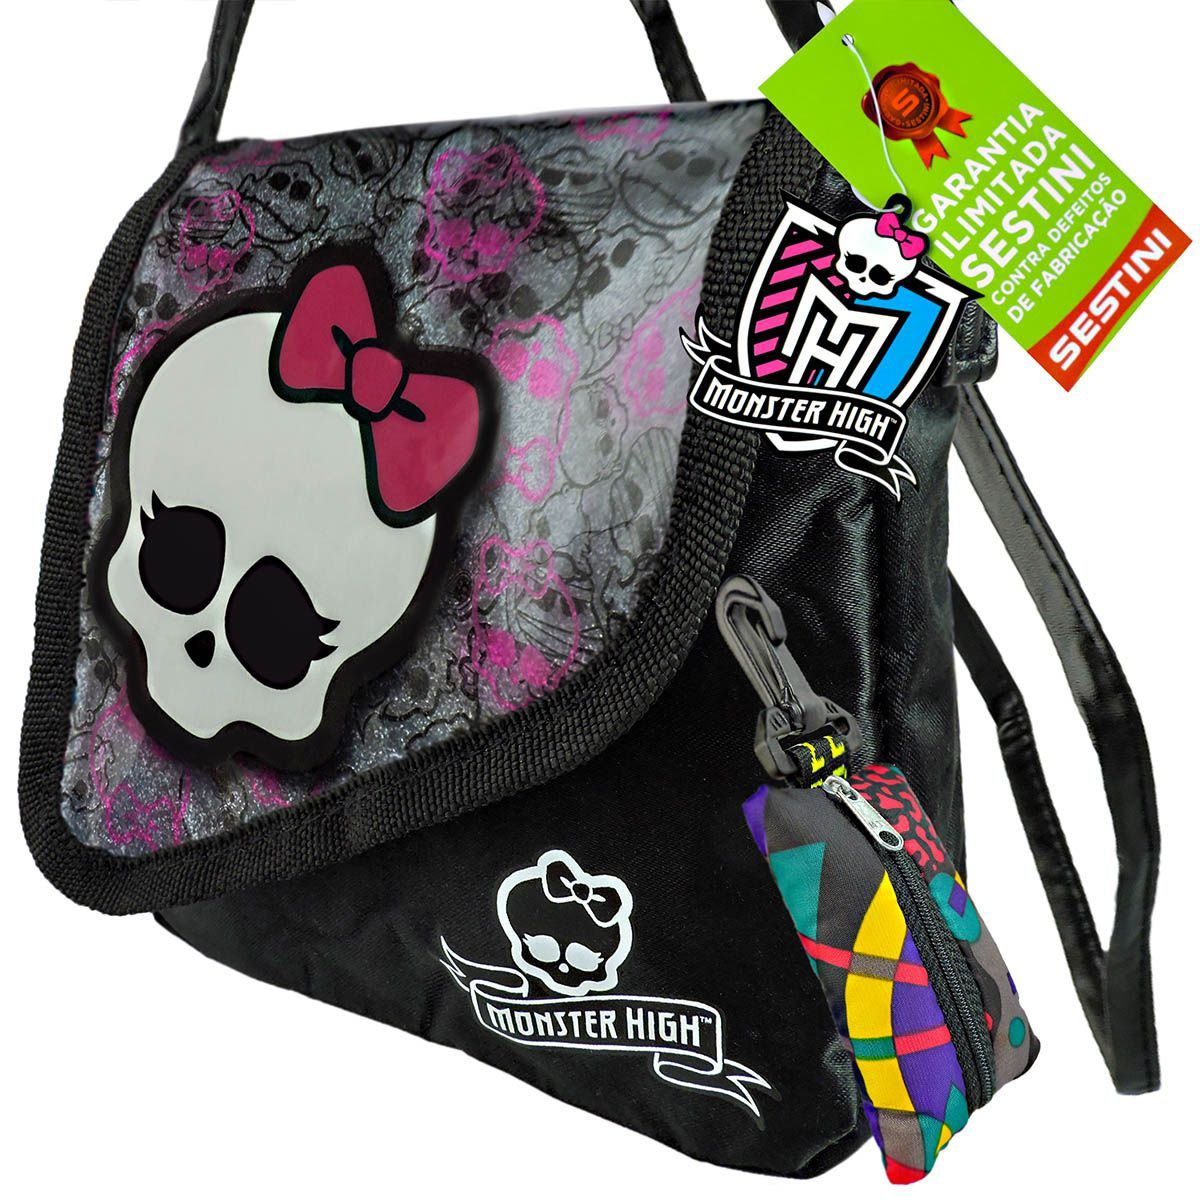 Monster High Bolsinha Skullete Sestini Mais Porta Moedas